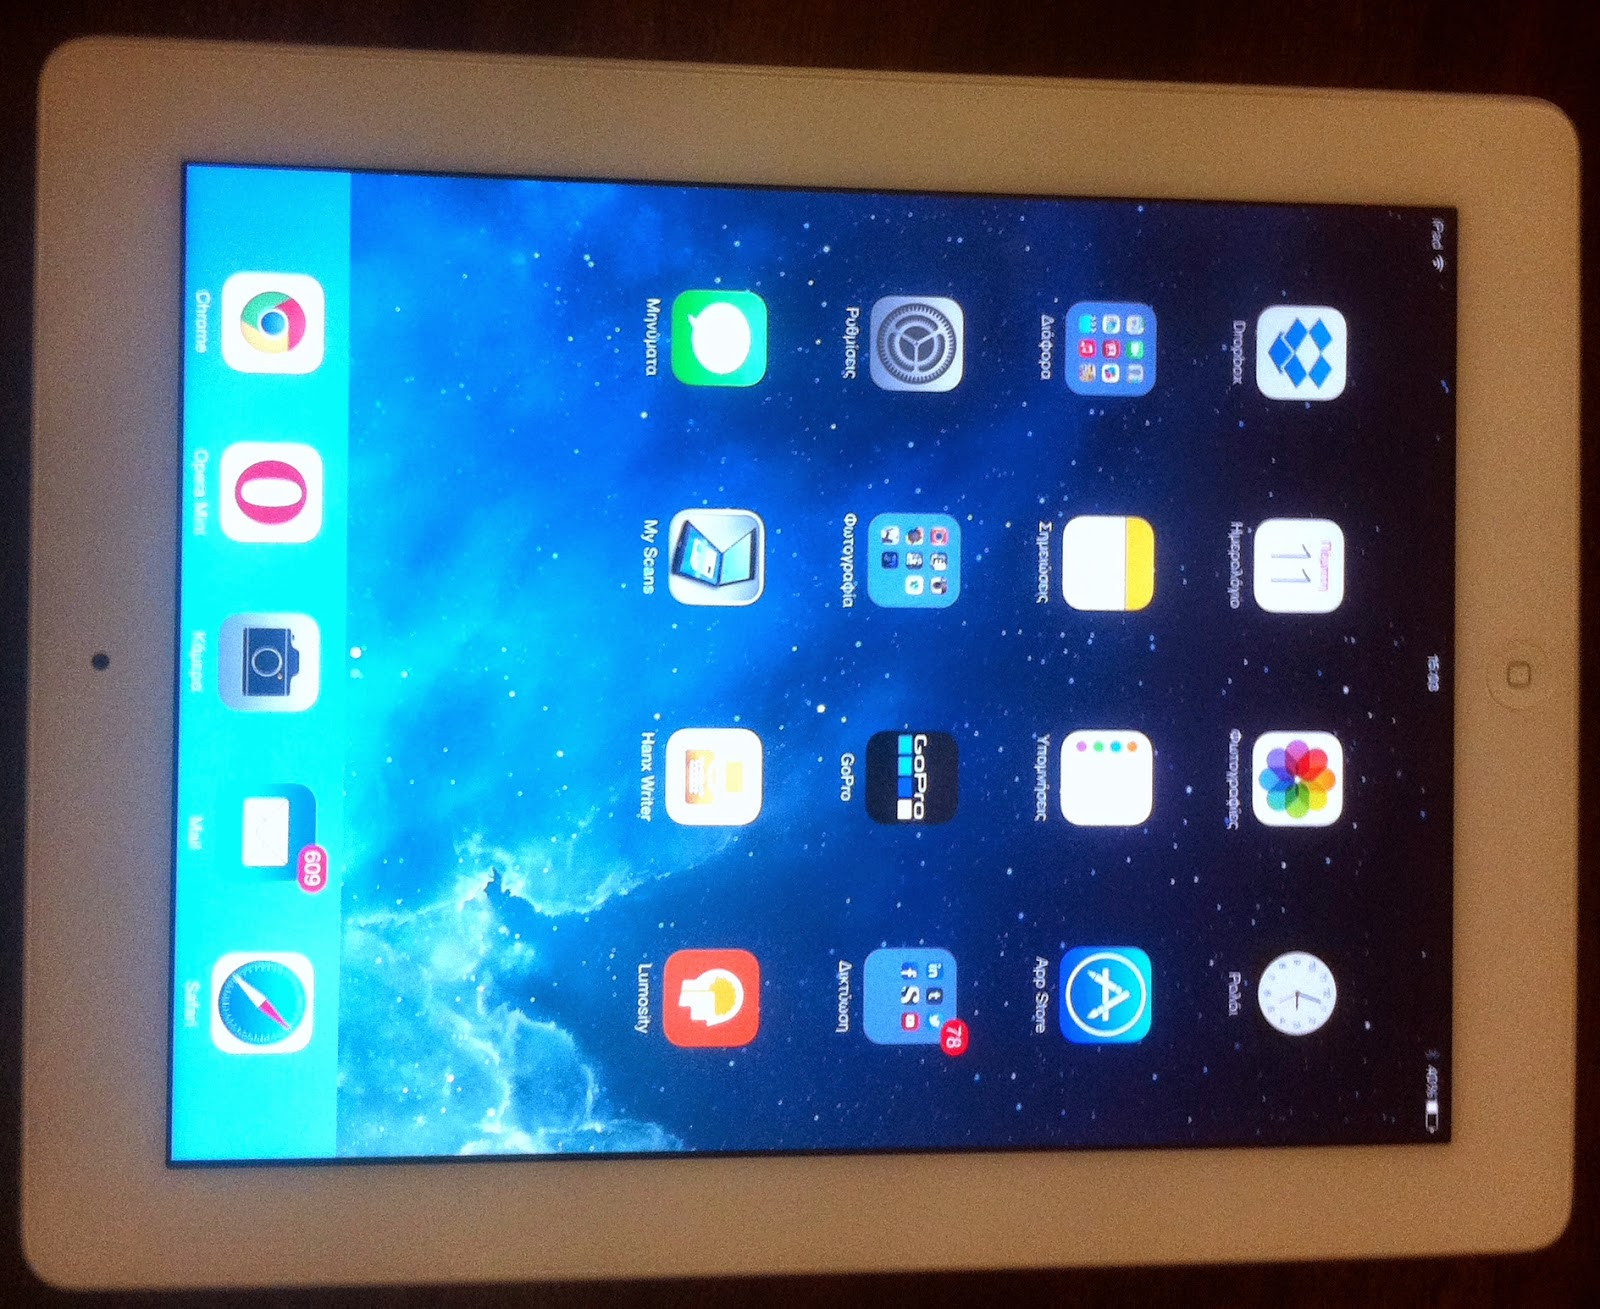 Apple iPad 4th Gen 16GB WiFi